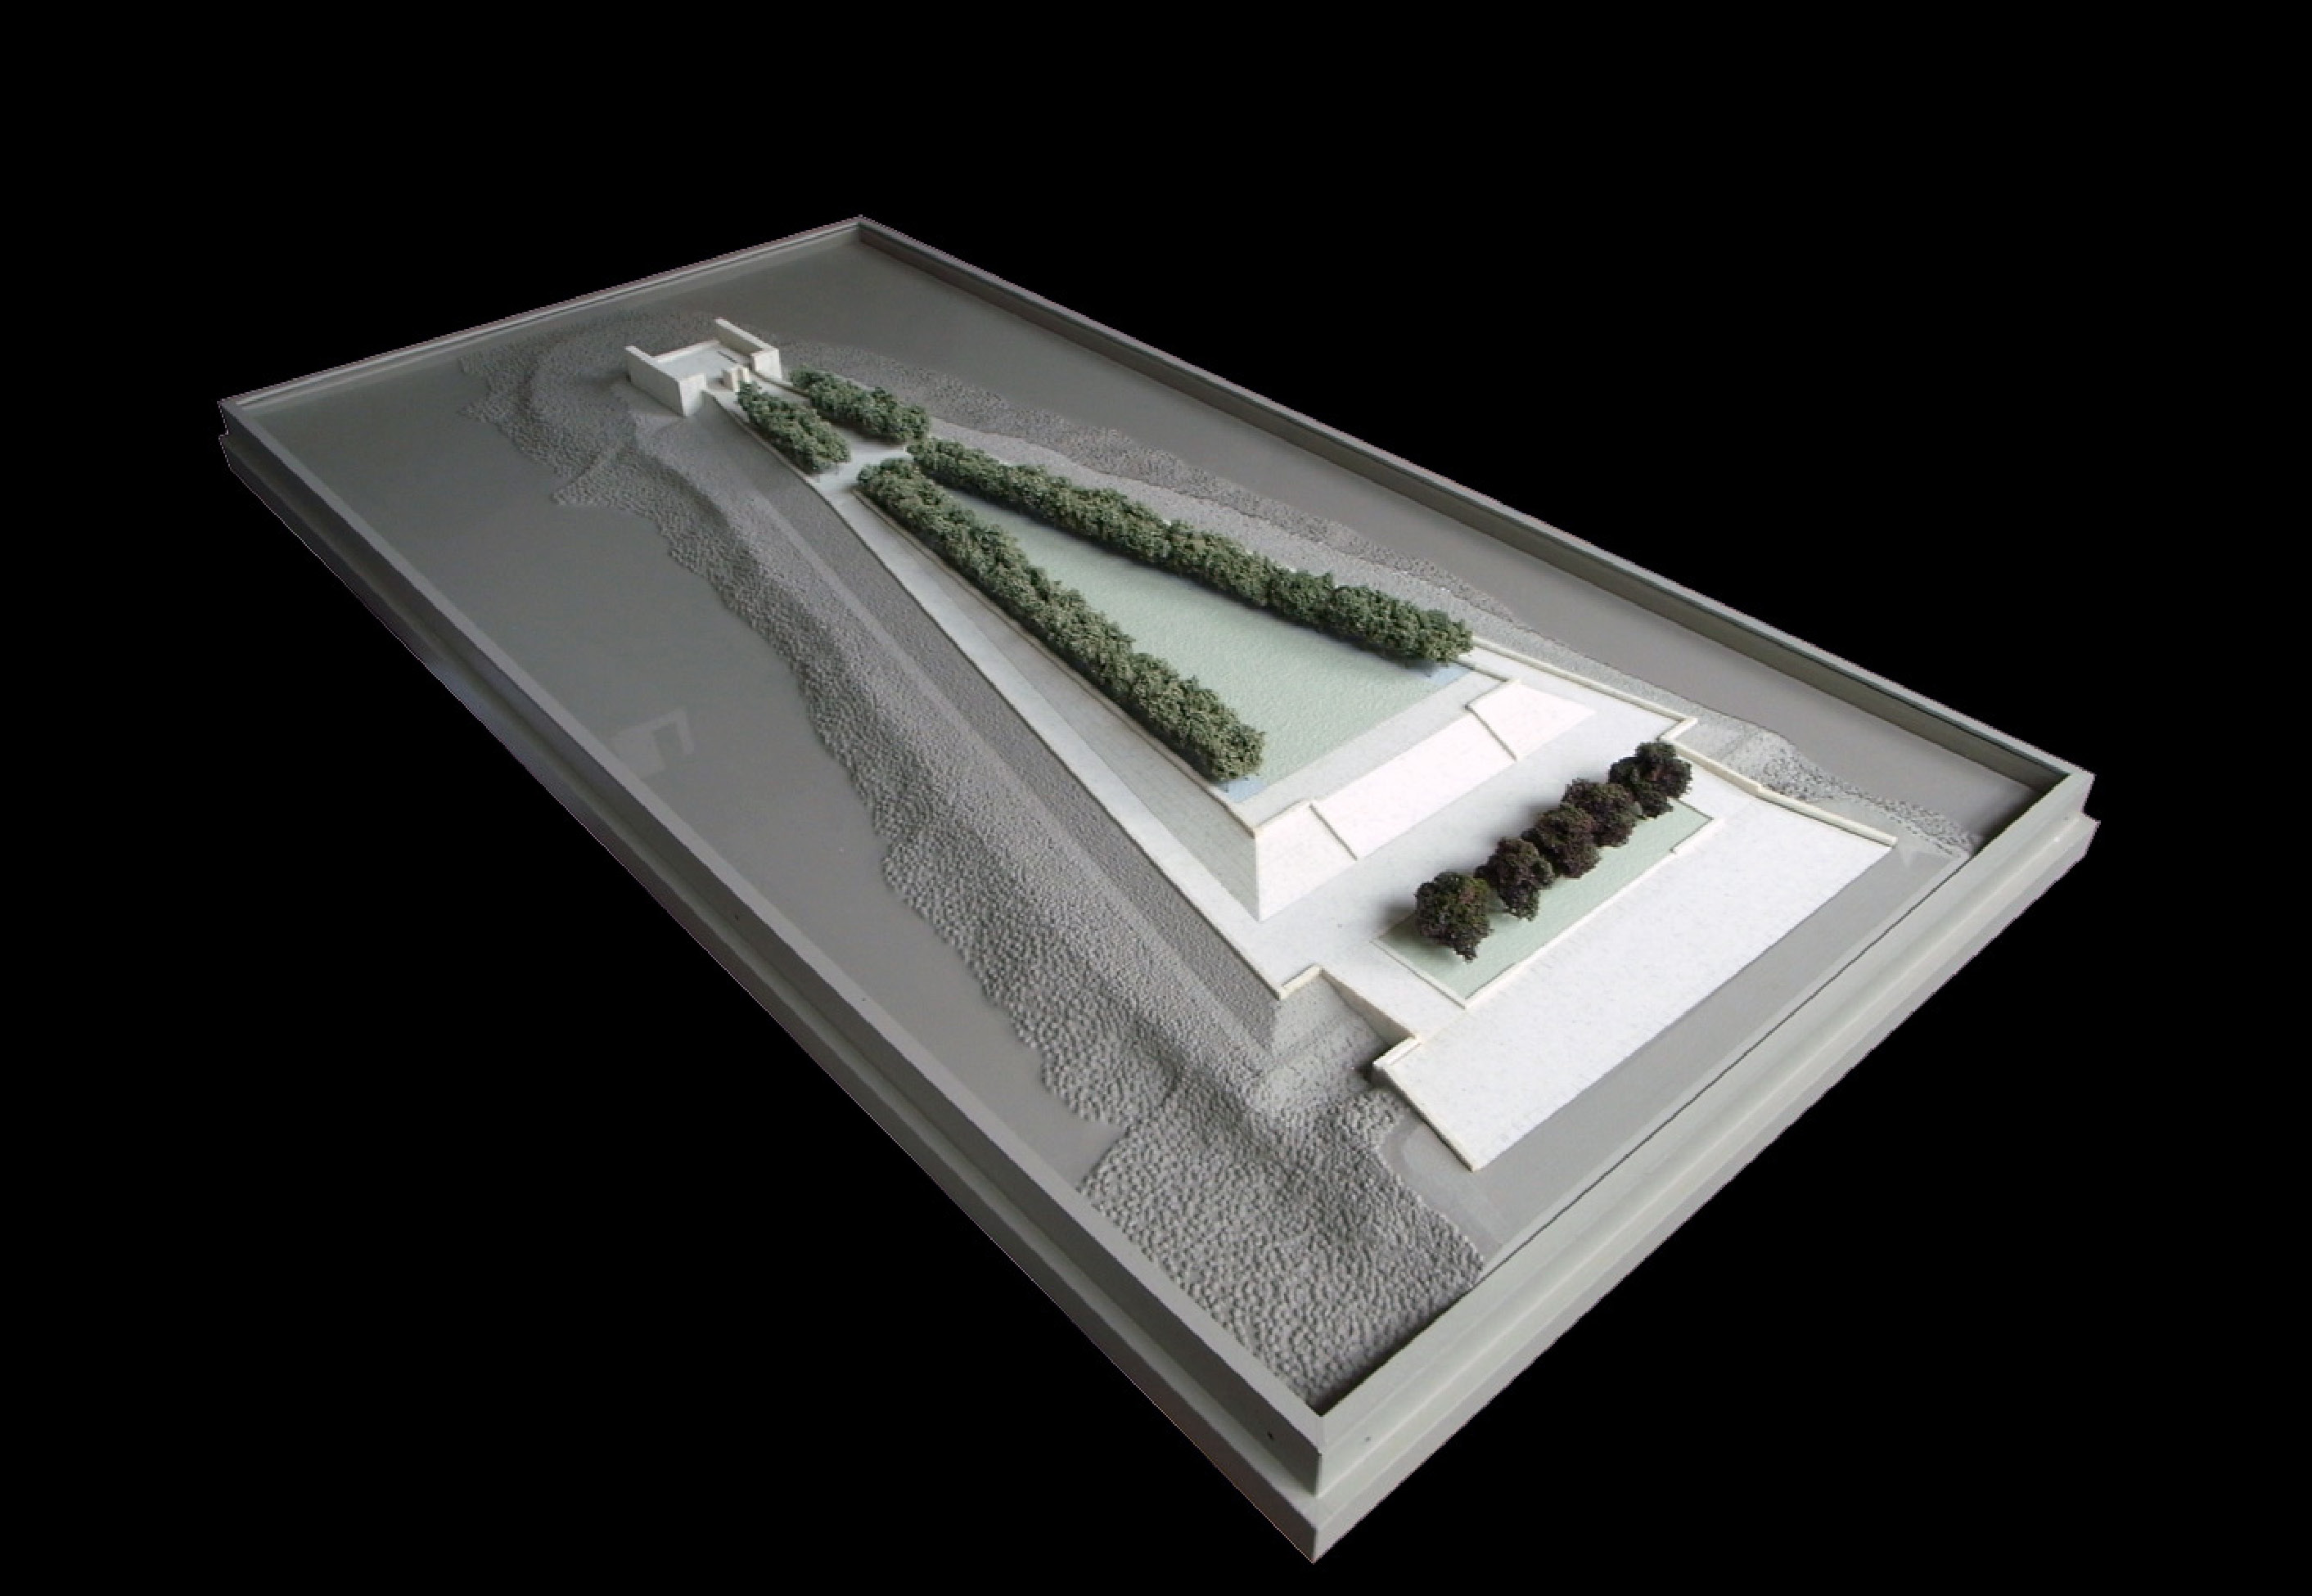 Presentation model of Four Freedoms Park